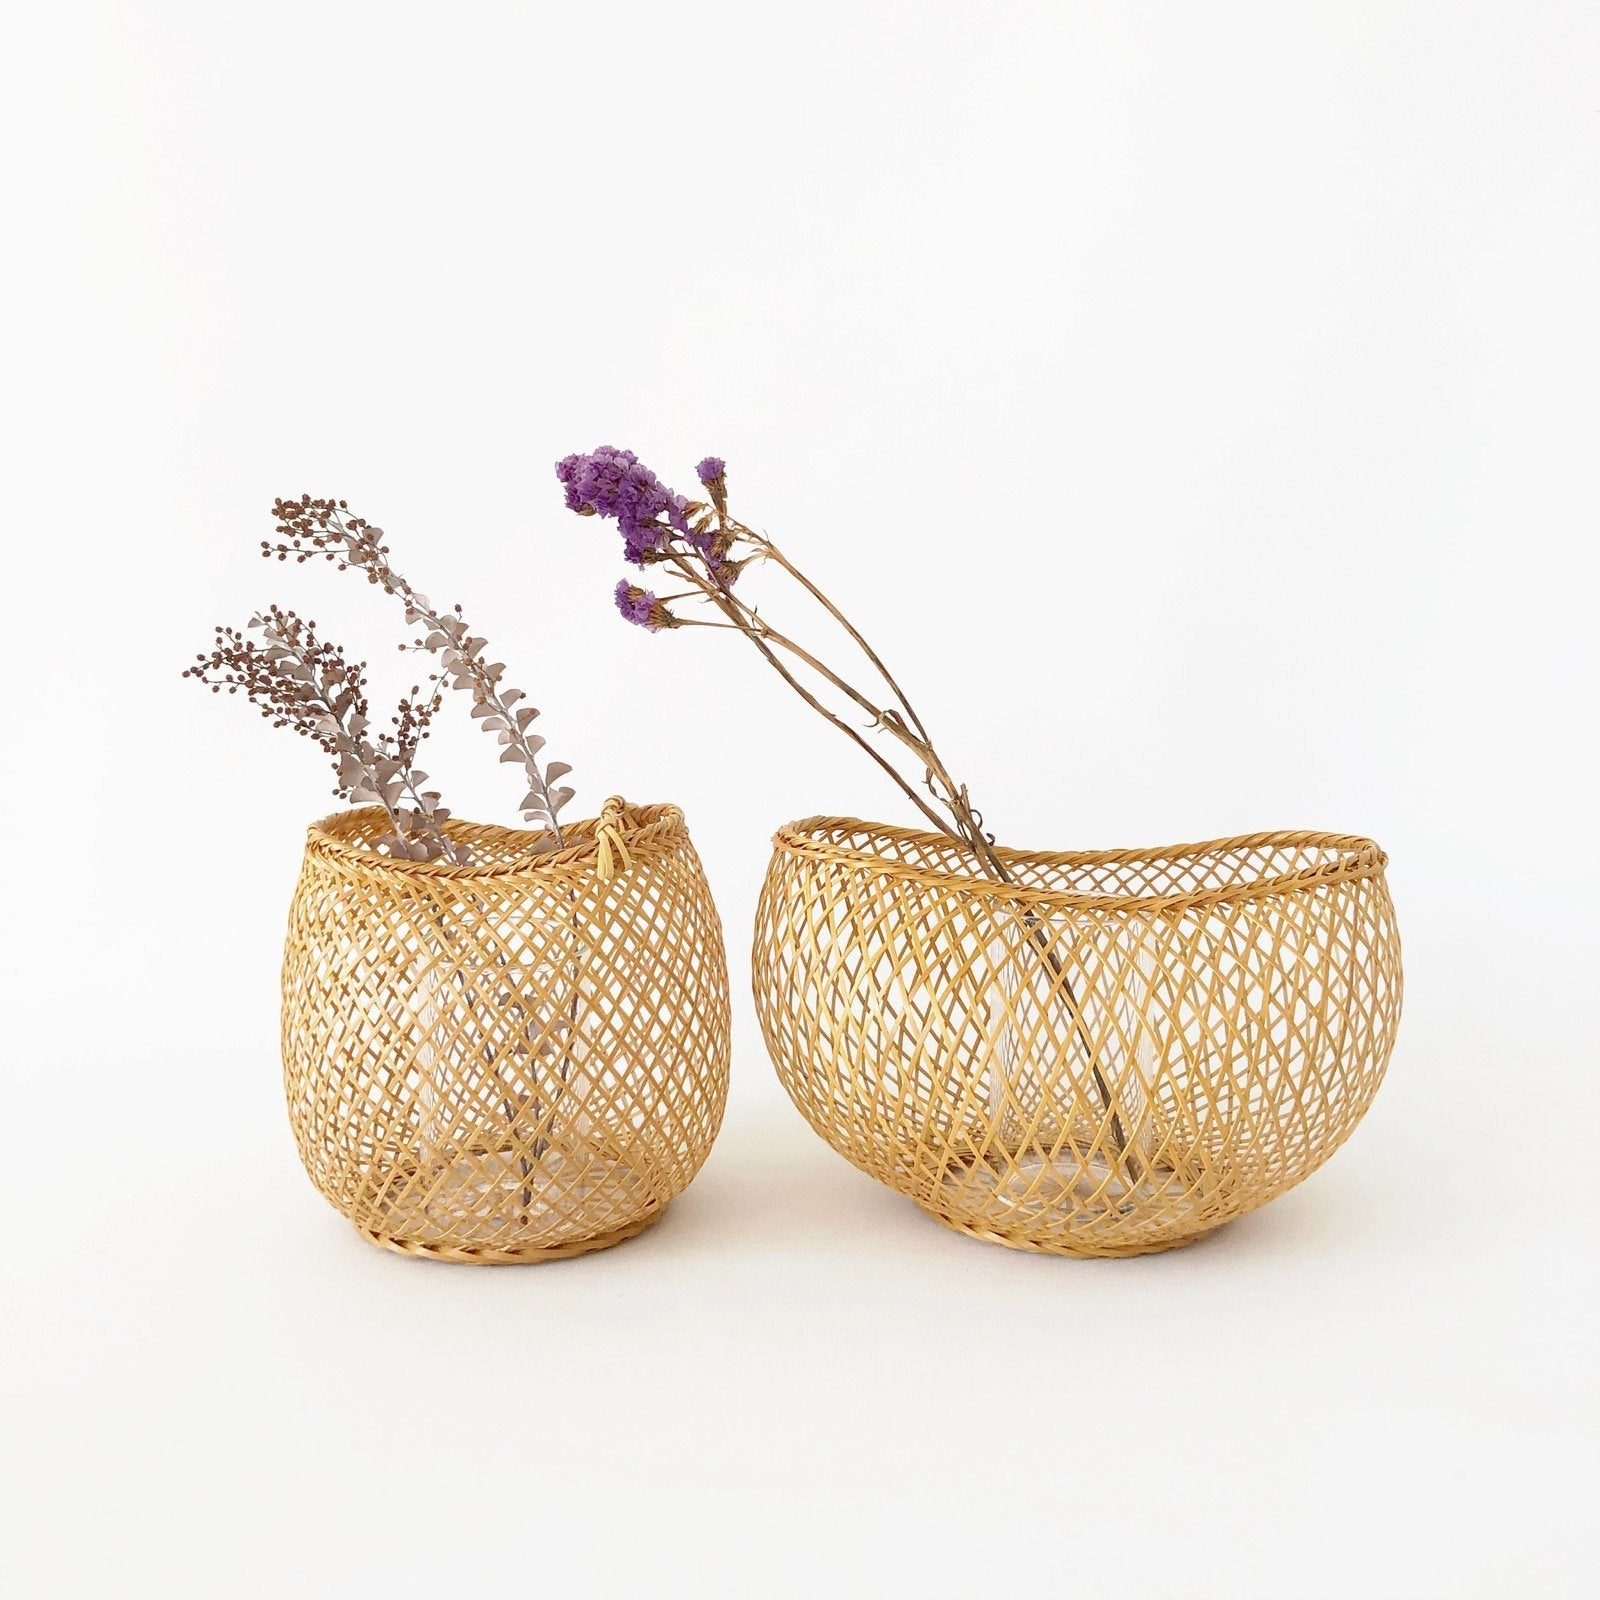 Kosuga Flower Baskets - Mayu and Oboro - tortoise general store